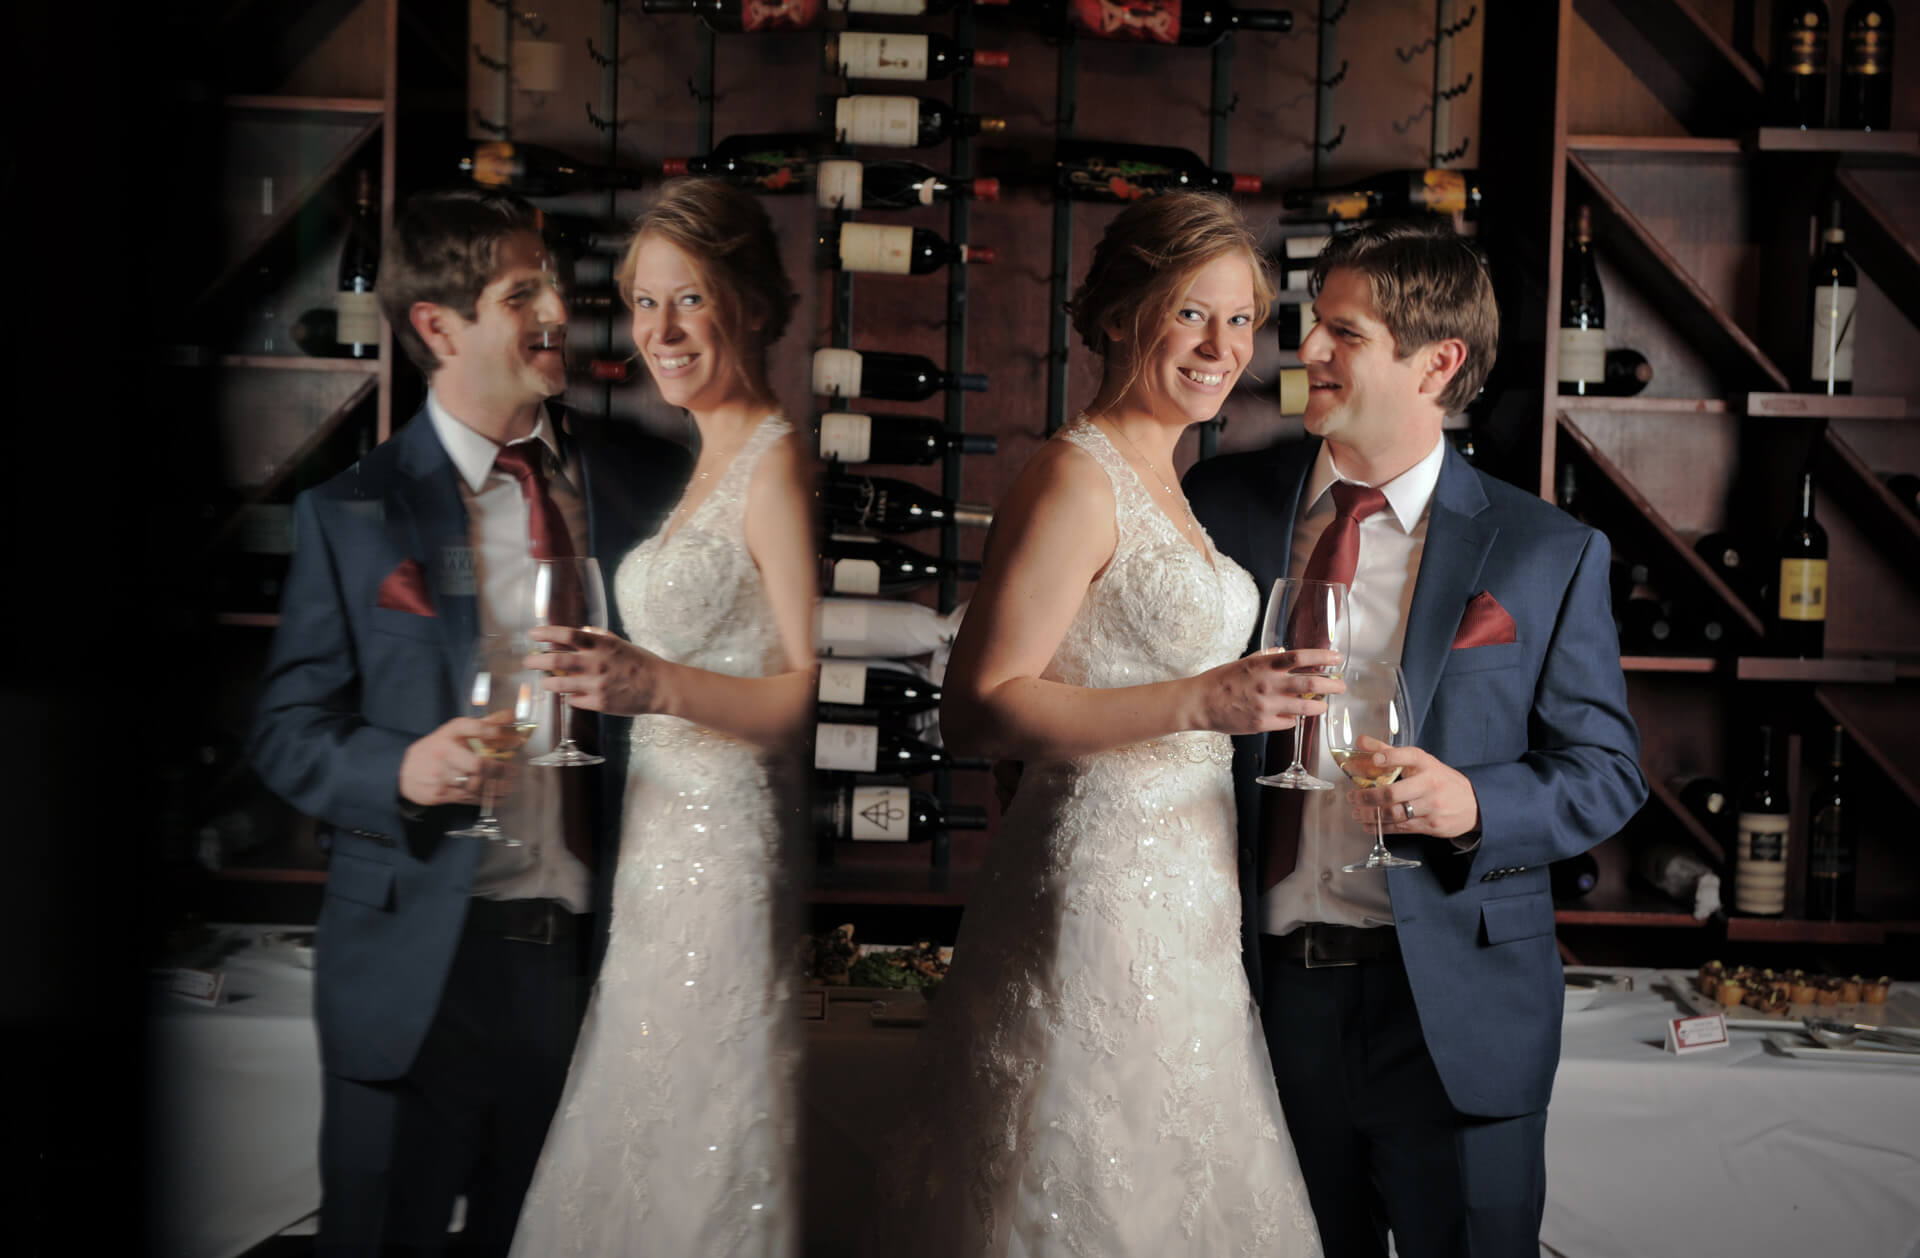 Epic Wedding portrait showing the bride and groom reflected in the wine vault at Vineology in Ann Arbor, Michigan.